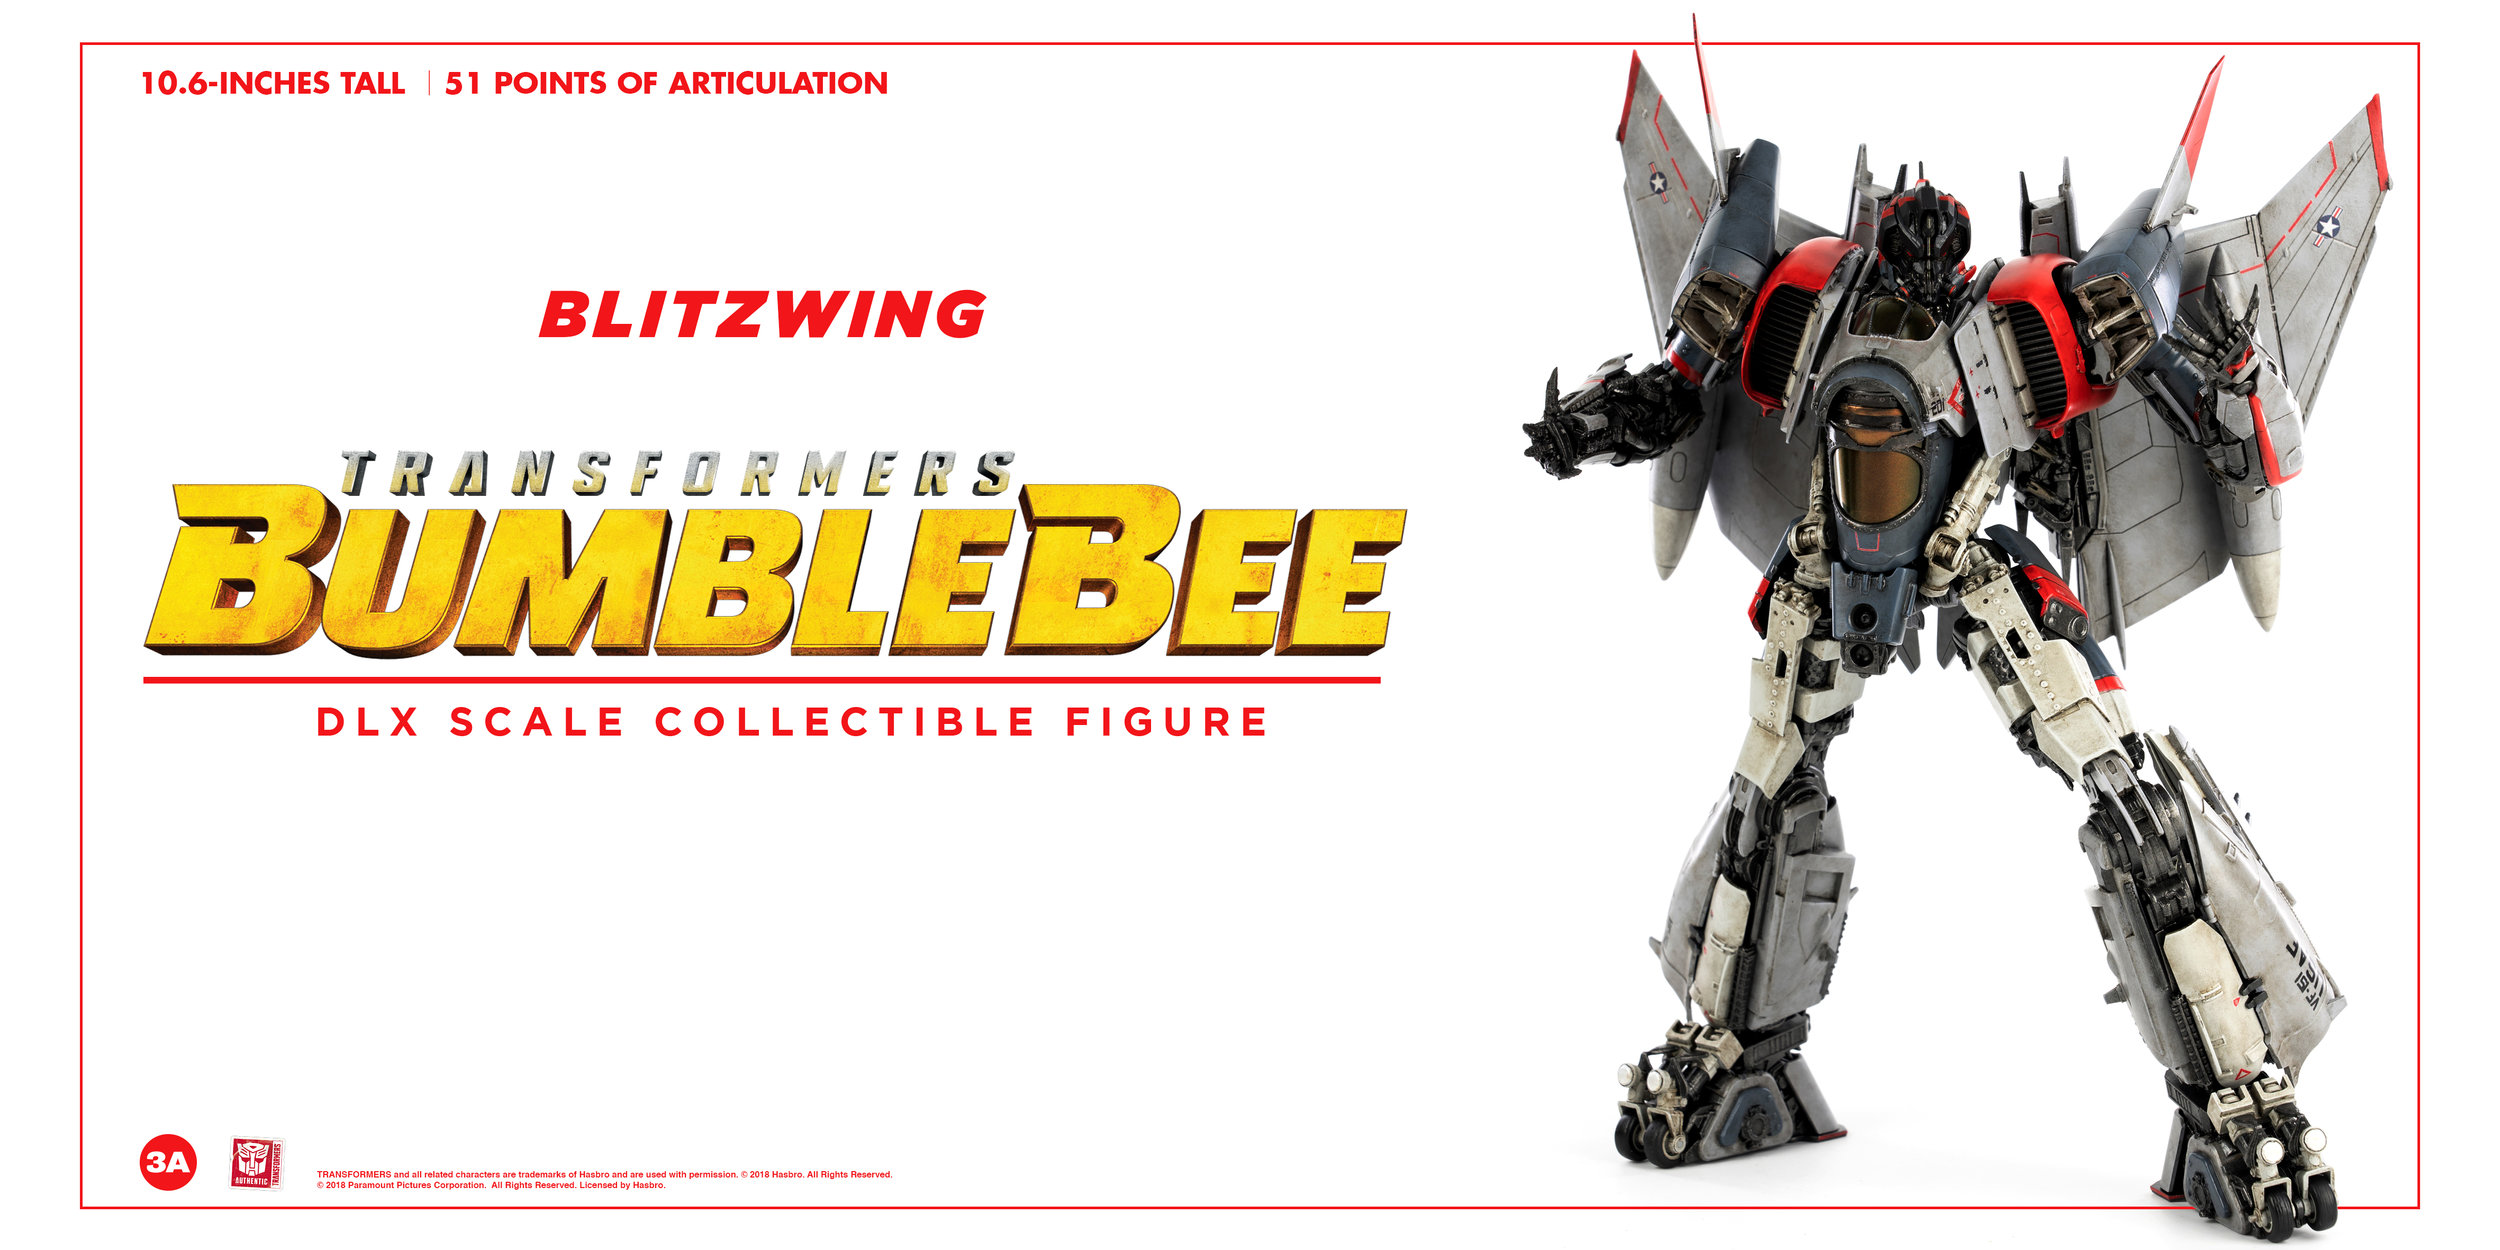 Blitzwing_DLX_white_wide_01.jpg